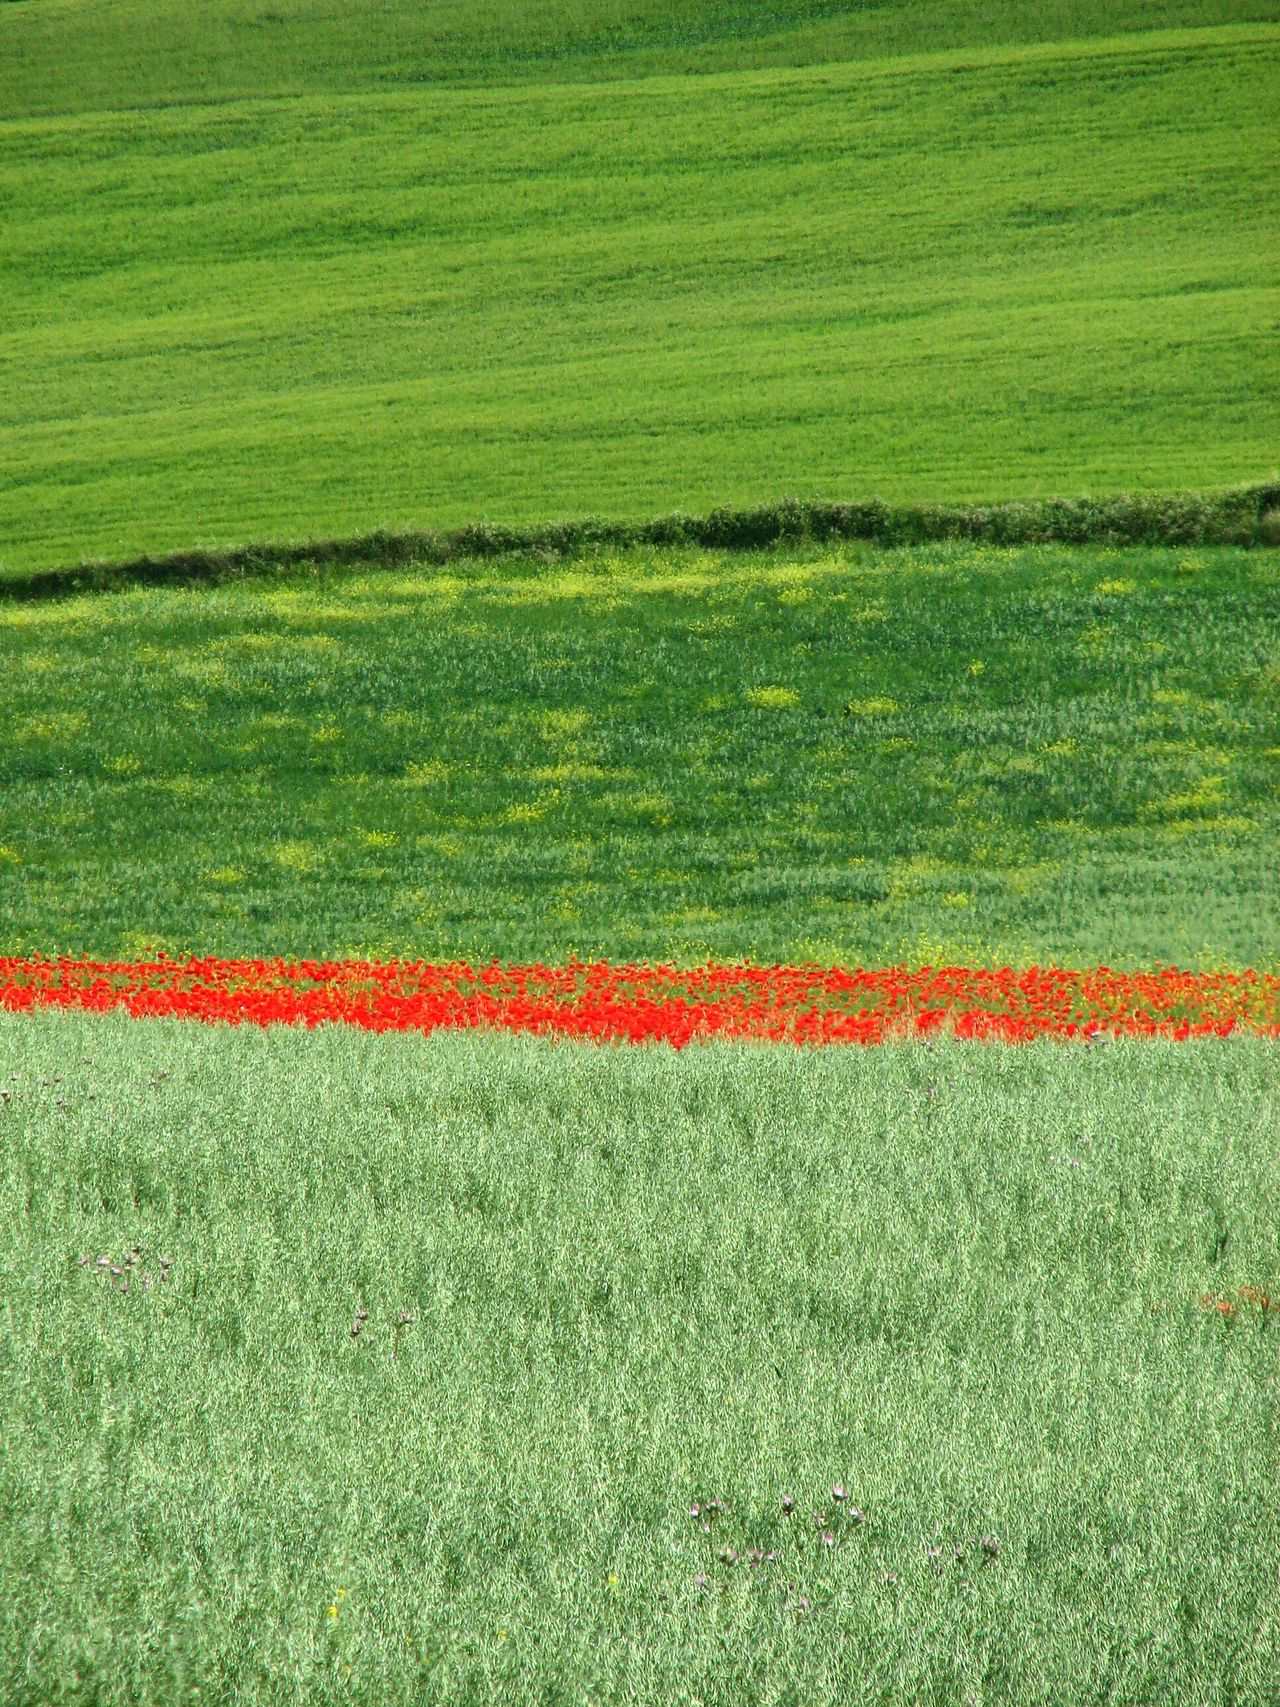 Poppy line. Green Color Field Crop  Grass Agriculture Backgrounds Sport No People Nature Cereal Plant Full Frame Rural Scene Outdoors Freshness Poppies  Beauty In Nature Springtime Freshness Nature Flower Head Fragility Awehaven's Andalucia